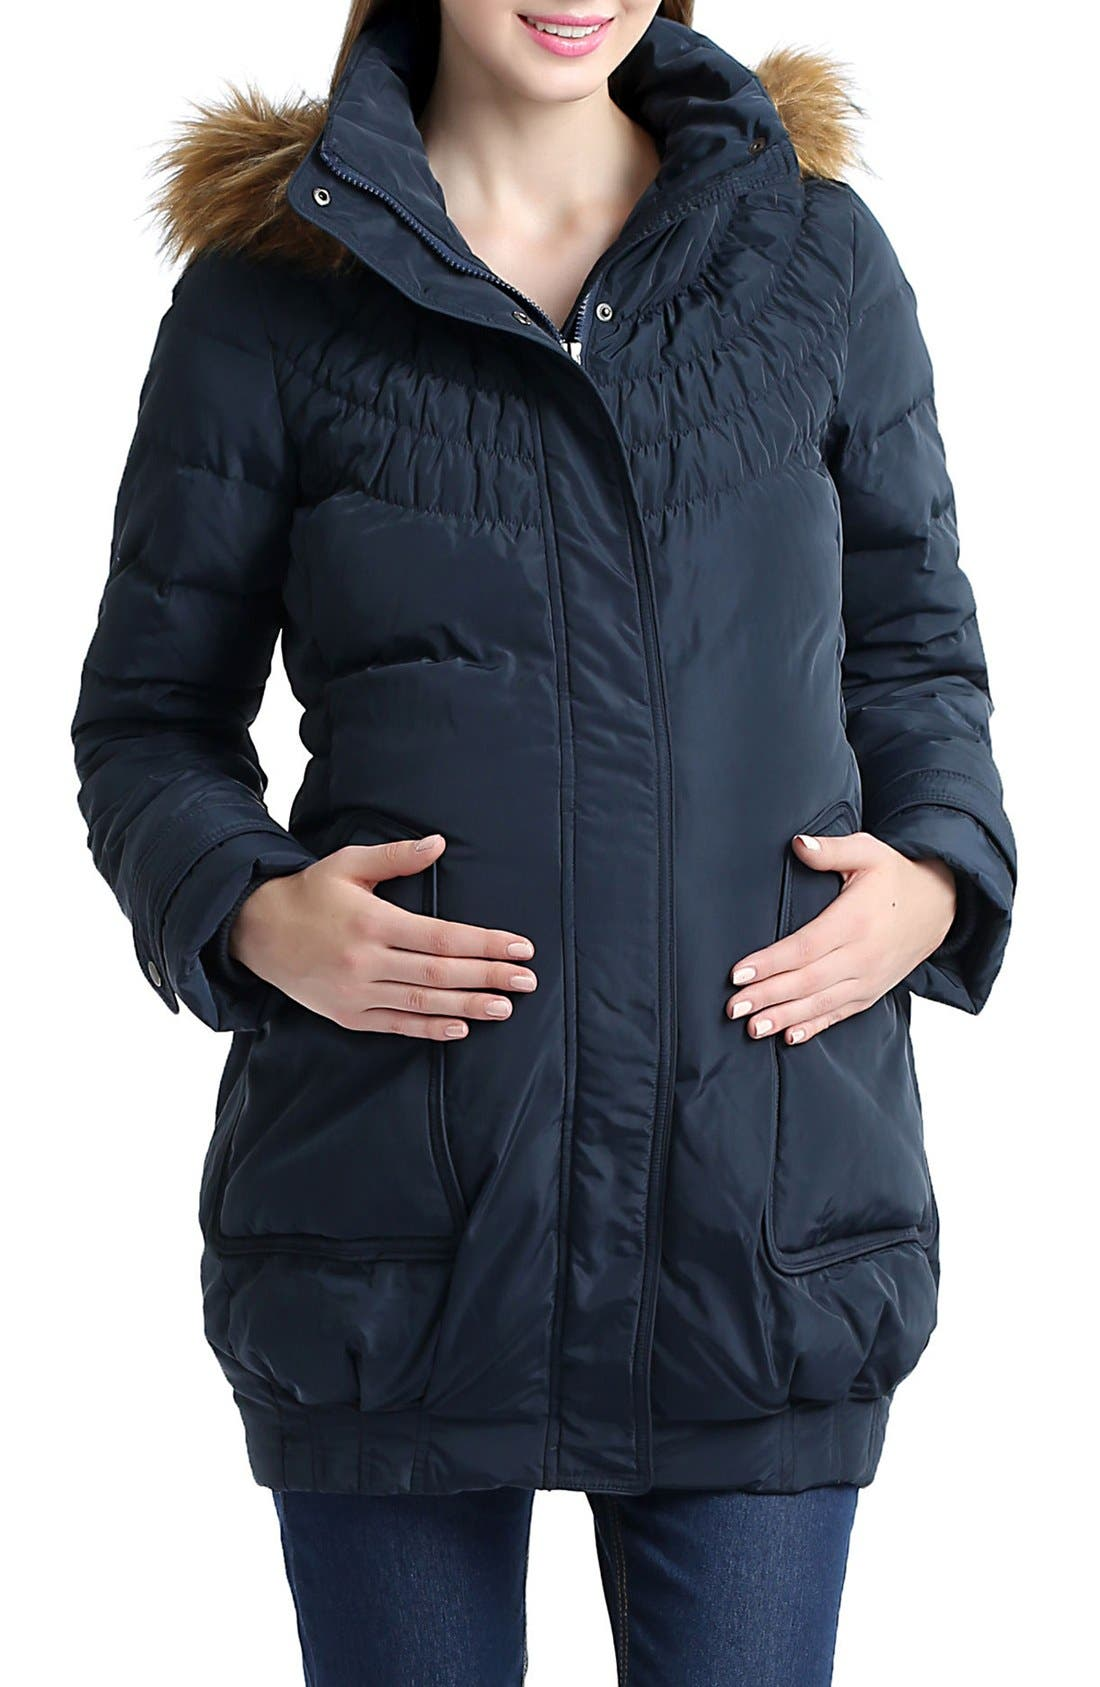 'Arlo' Water Resistant Down Maternity Parka with Baby Carrier Cover Inset,                         Main,                         color, Navy